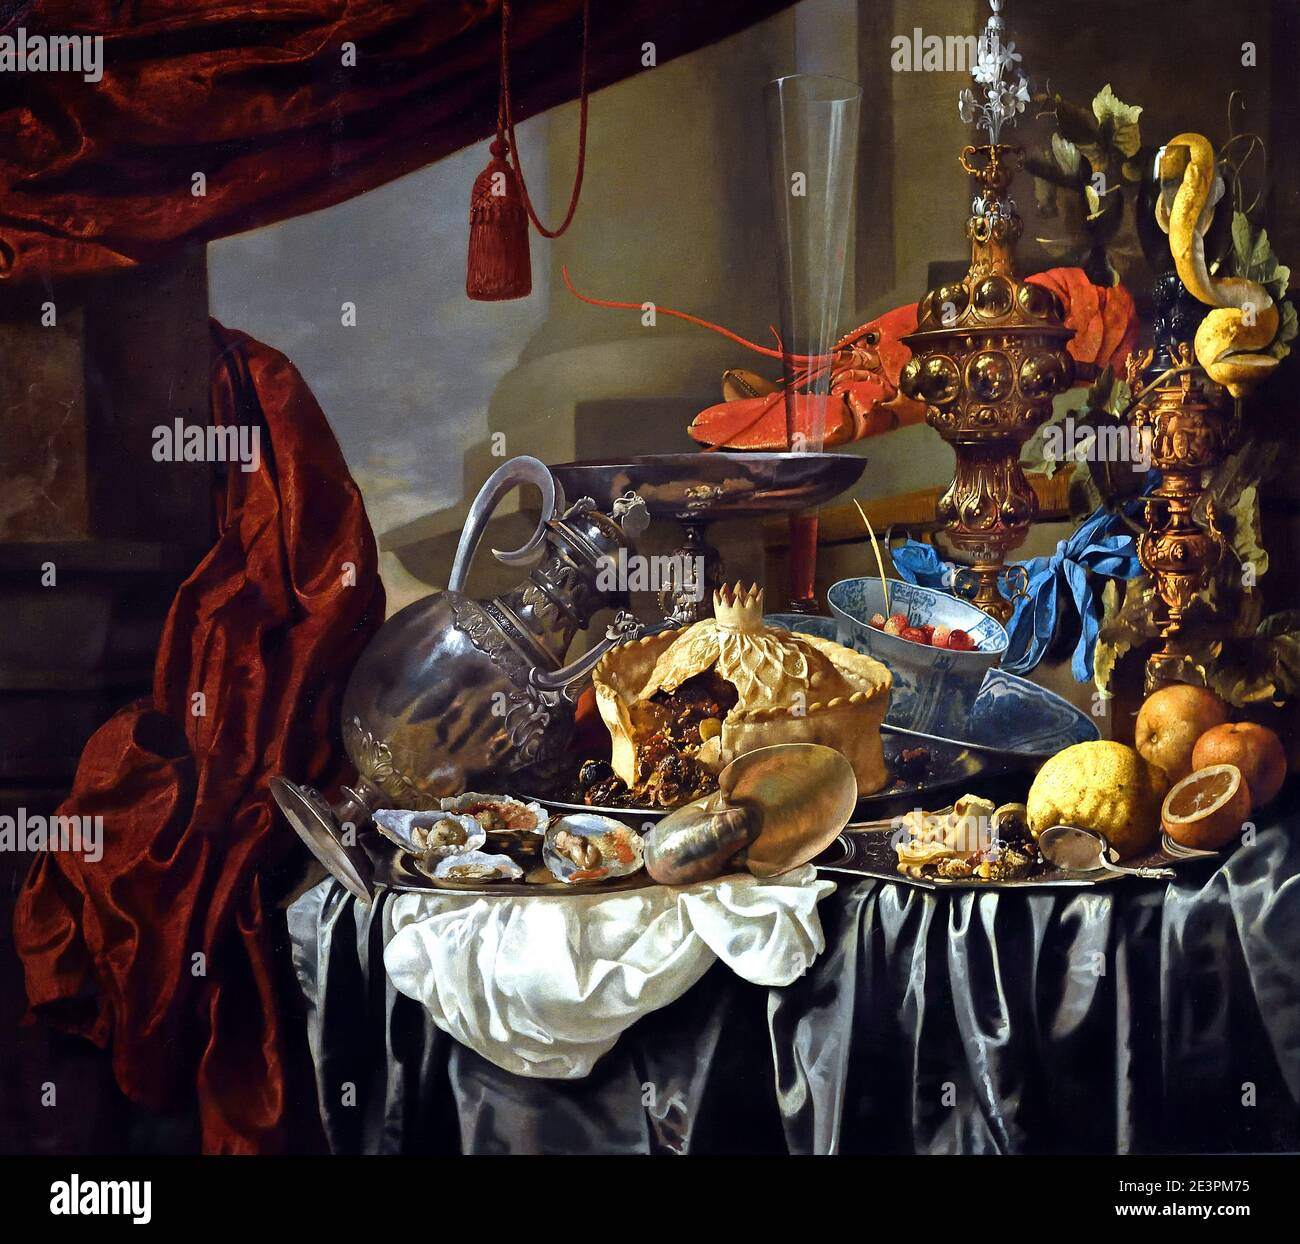 Banquet Still Life with Silver and Gilt Vessels, a Nautilus Shell, Porcelain, Food and Other Items on a Draped Table 1650  by Christian Luycks 1623-1670 Antwerp Belgian, Belgium, Flemish, Stock Photo